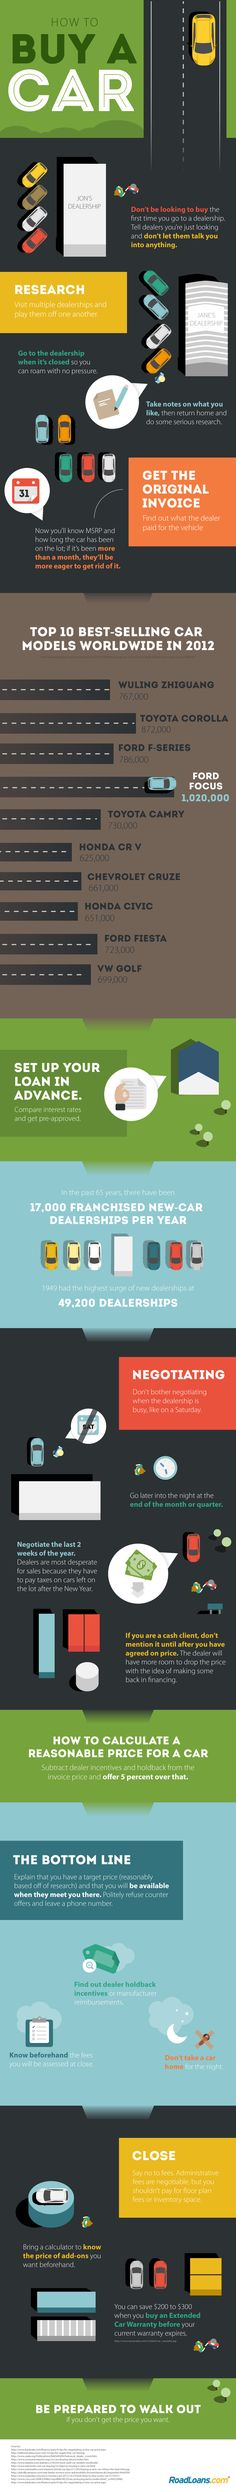 How-To-Buy-A-Car; Don't tell them you're paying cash until the end; don't tel them you have a trade in until the end!!